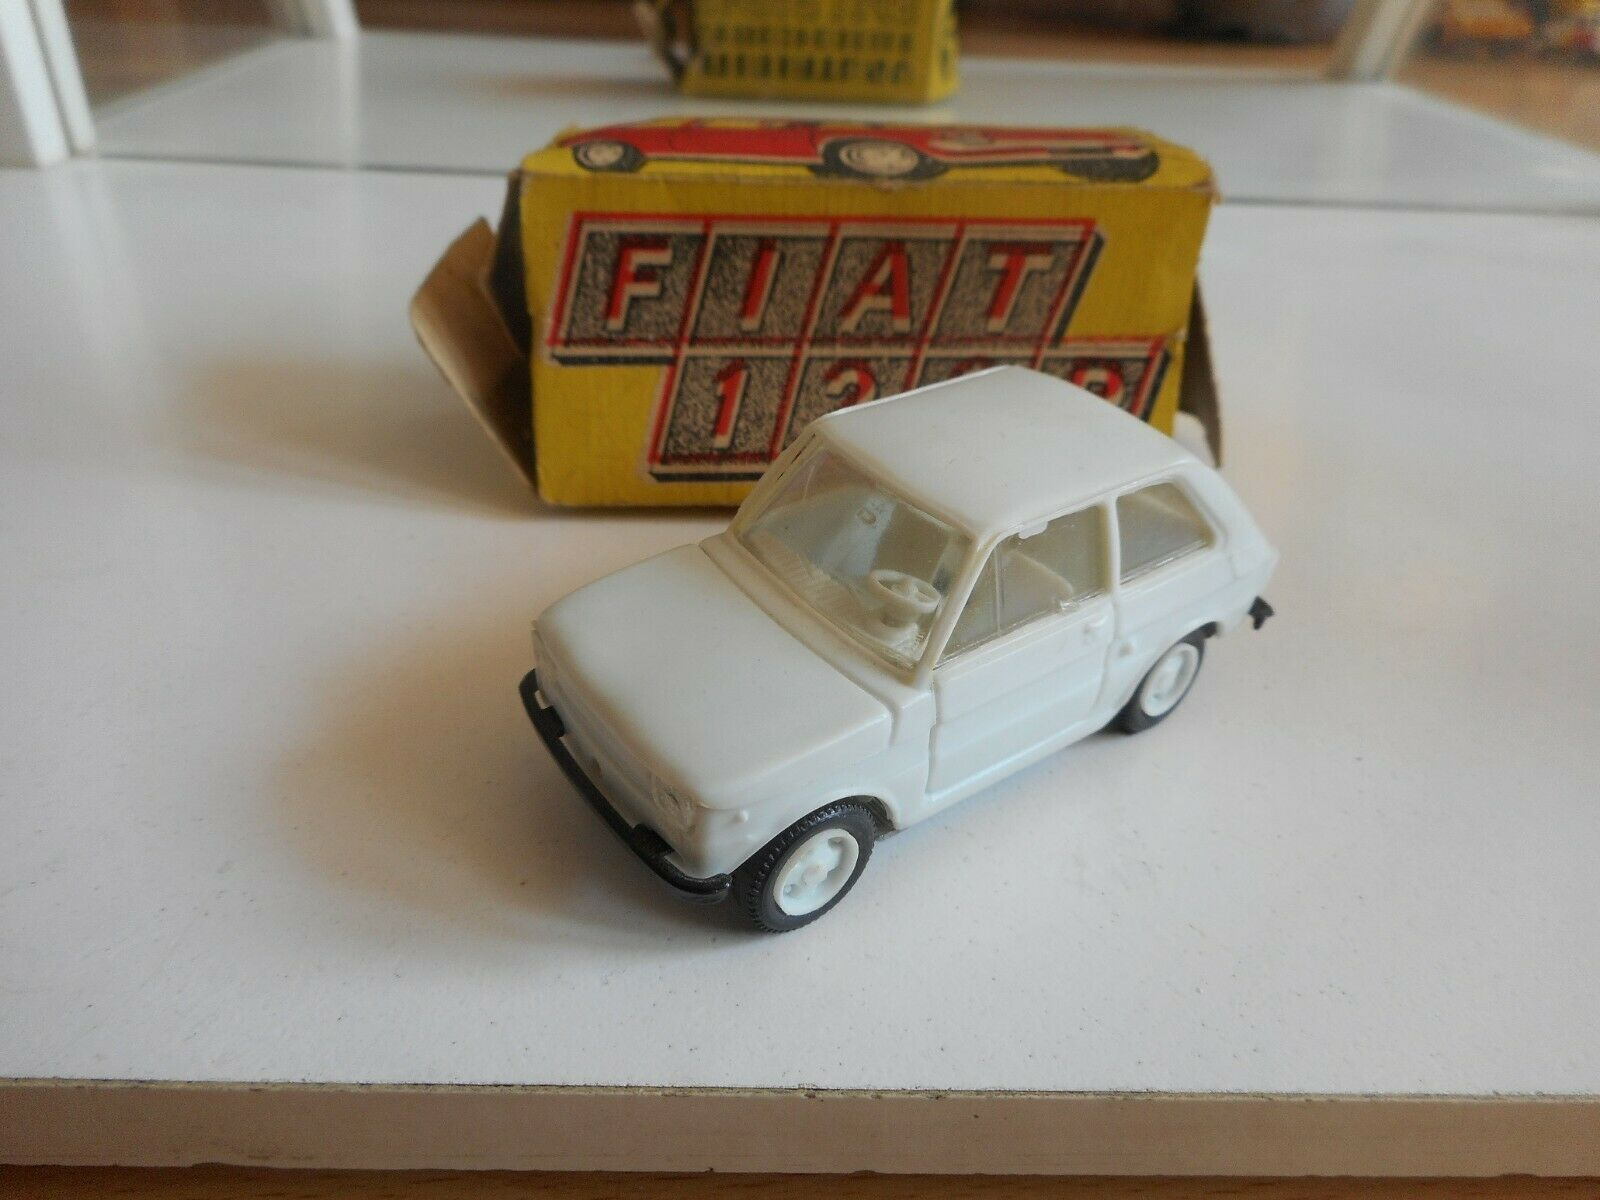 Estetyka Fiat 126 P in White on 1 43 in Box